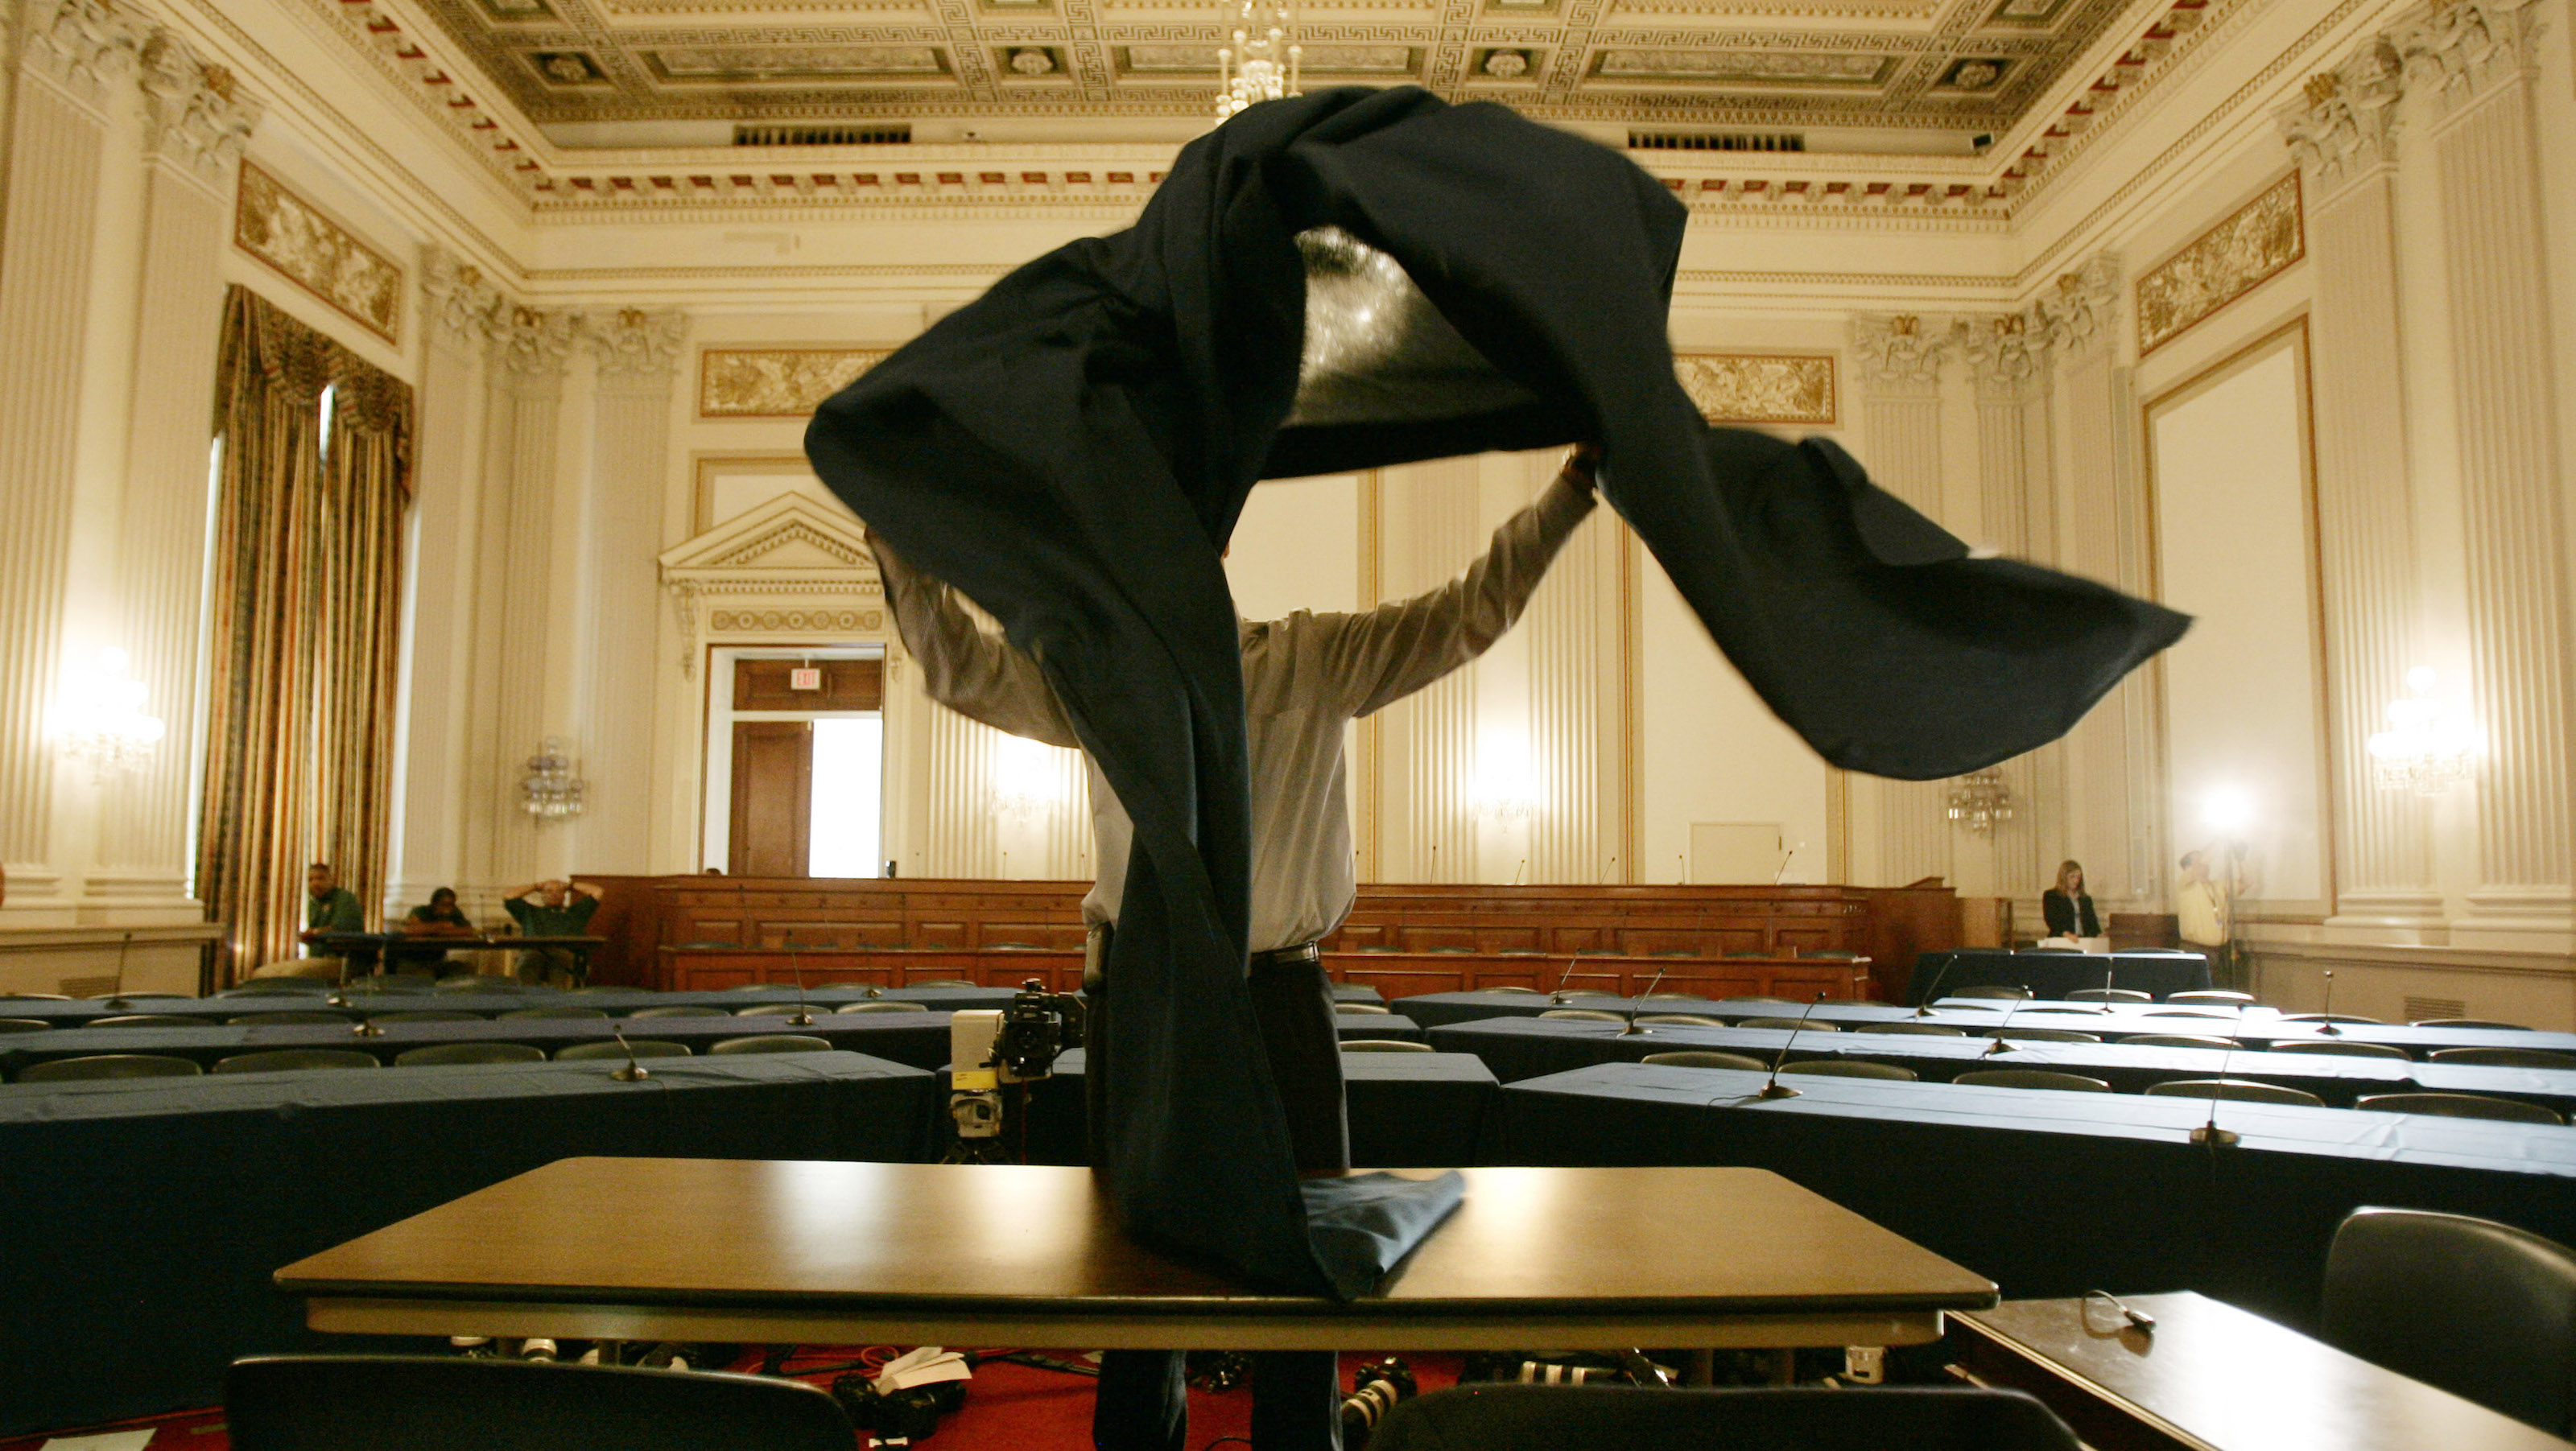 U.S. House Foreign Affairs Committee staffer Riley Moore lays out a tablecloth on a desk in Washington, September 10, 2007, where the U.S. military commander in Iraq, General David Petraeus and U.S. Ambassador to Iraq Ryan Crocker are to expected to report on military progess in Iraq. In the report considered crucial to U.S. strategy in the highly unpopular war in Iraq, Petraeus is expected to tell Congress on Monday that U.S. troop levels should not be cut deeply.        REUTERS/Jason Reed   (UNITED STATES) - RTR1TOKF